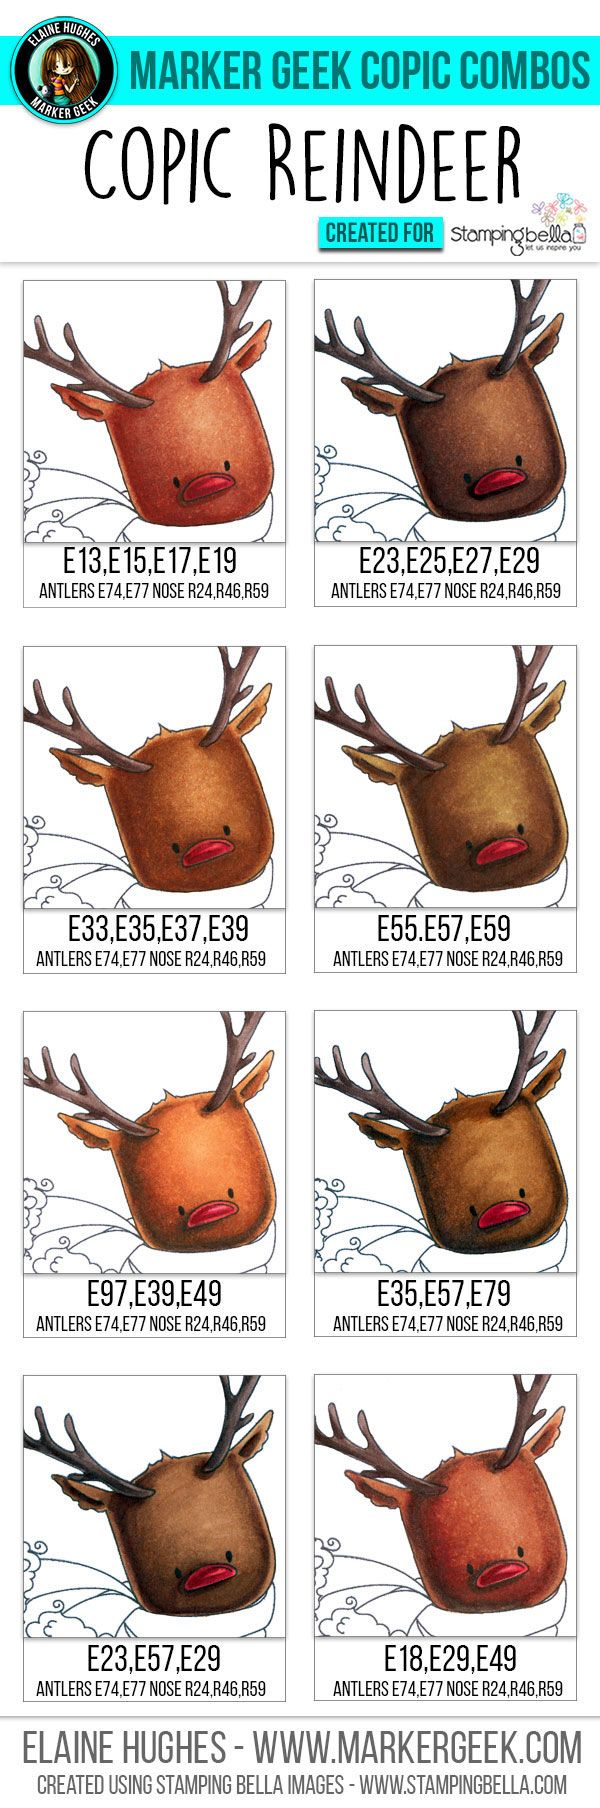 A quick look at Copic Earth tones and Copic reindeer colour combos for colouring Stamping Bella's cute Rudolph the Reindeer stamp images.